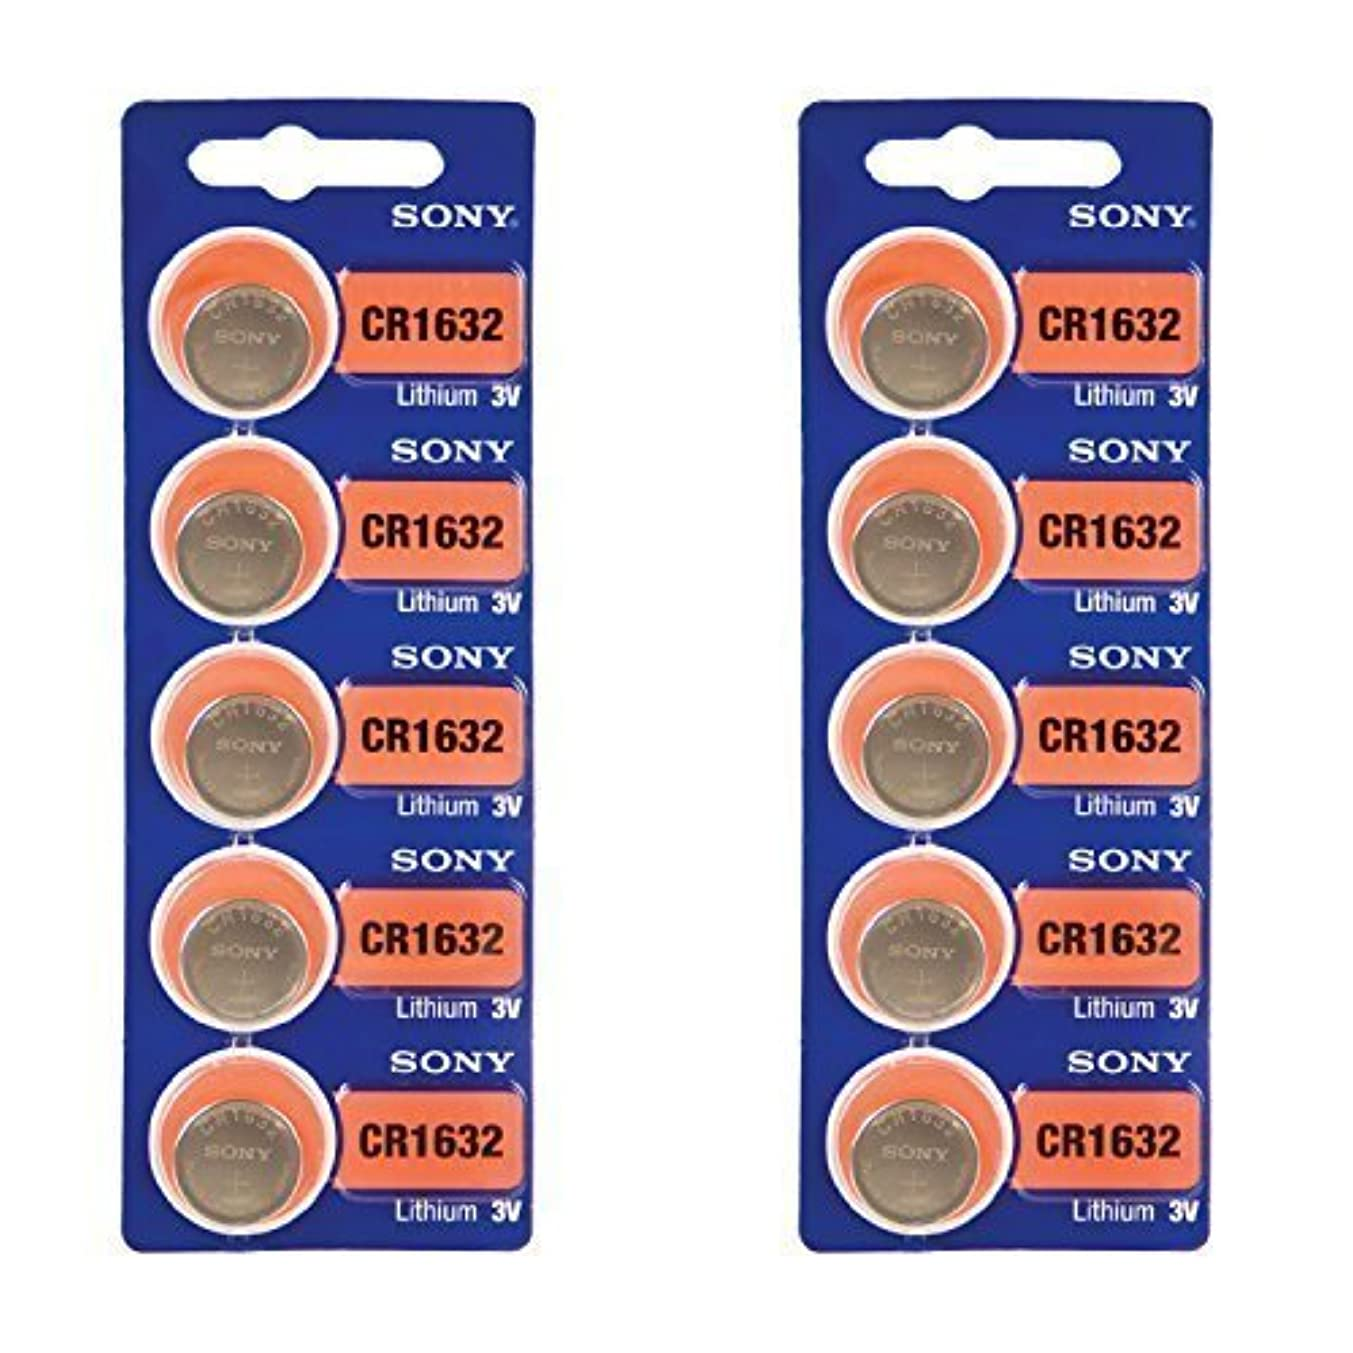 SONY CR1632 3 Volt Lithium Coin Battery 10 Pack (2 packs of 5)